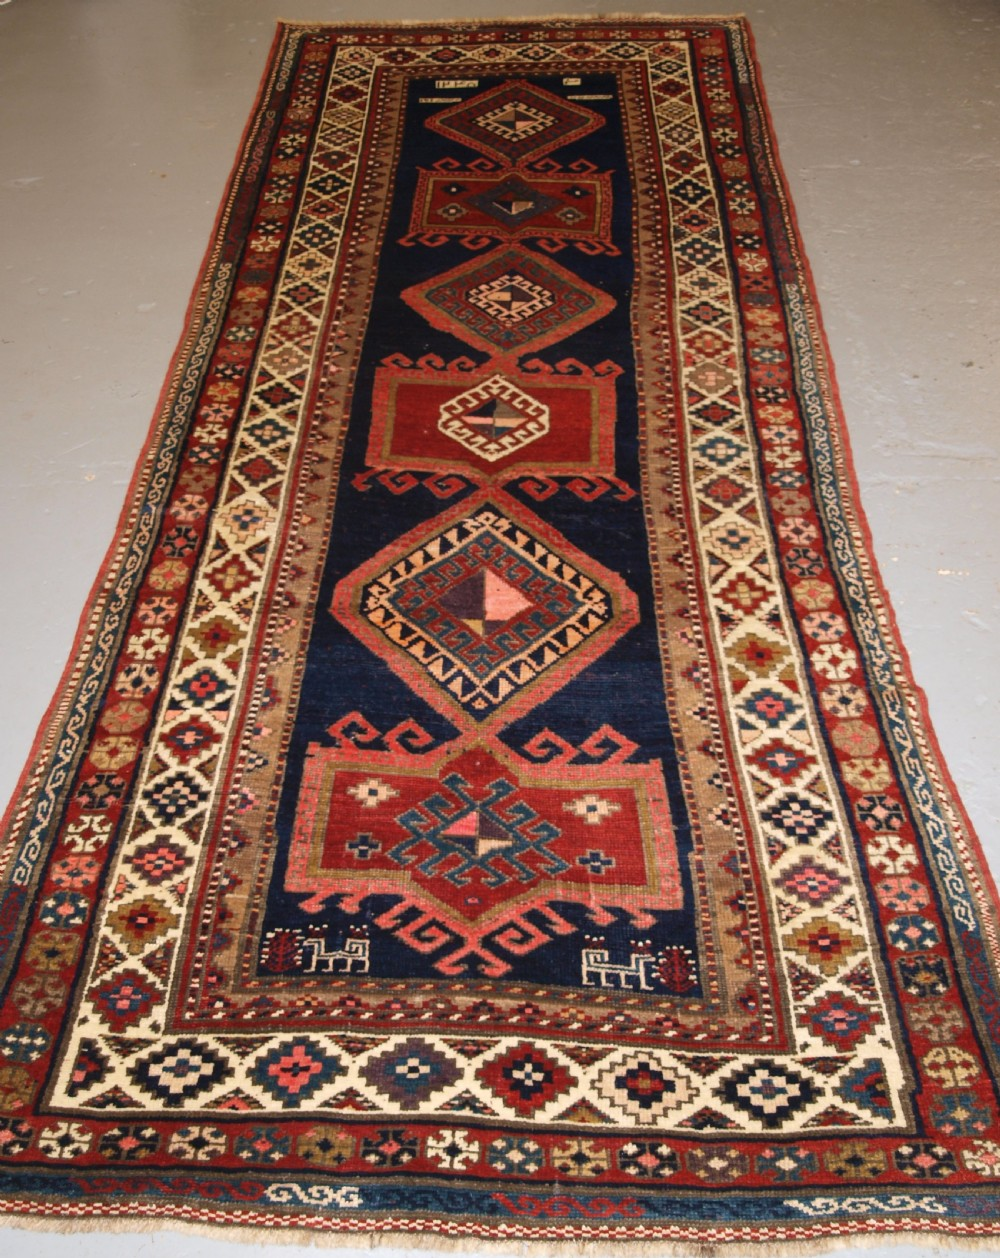 antique caucasian kazak long rug or runner great condition and colour late 19th century